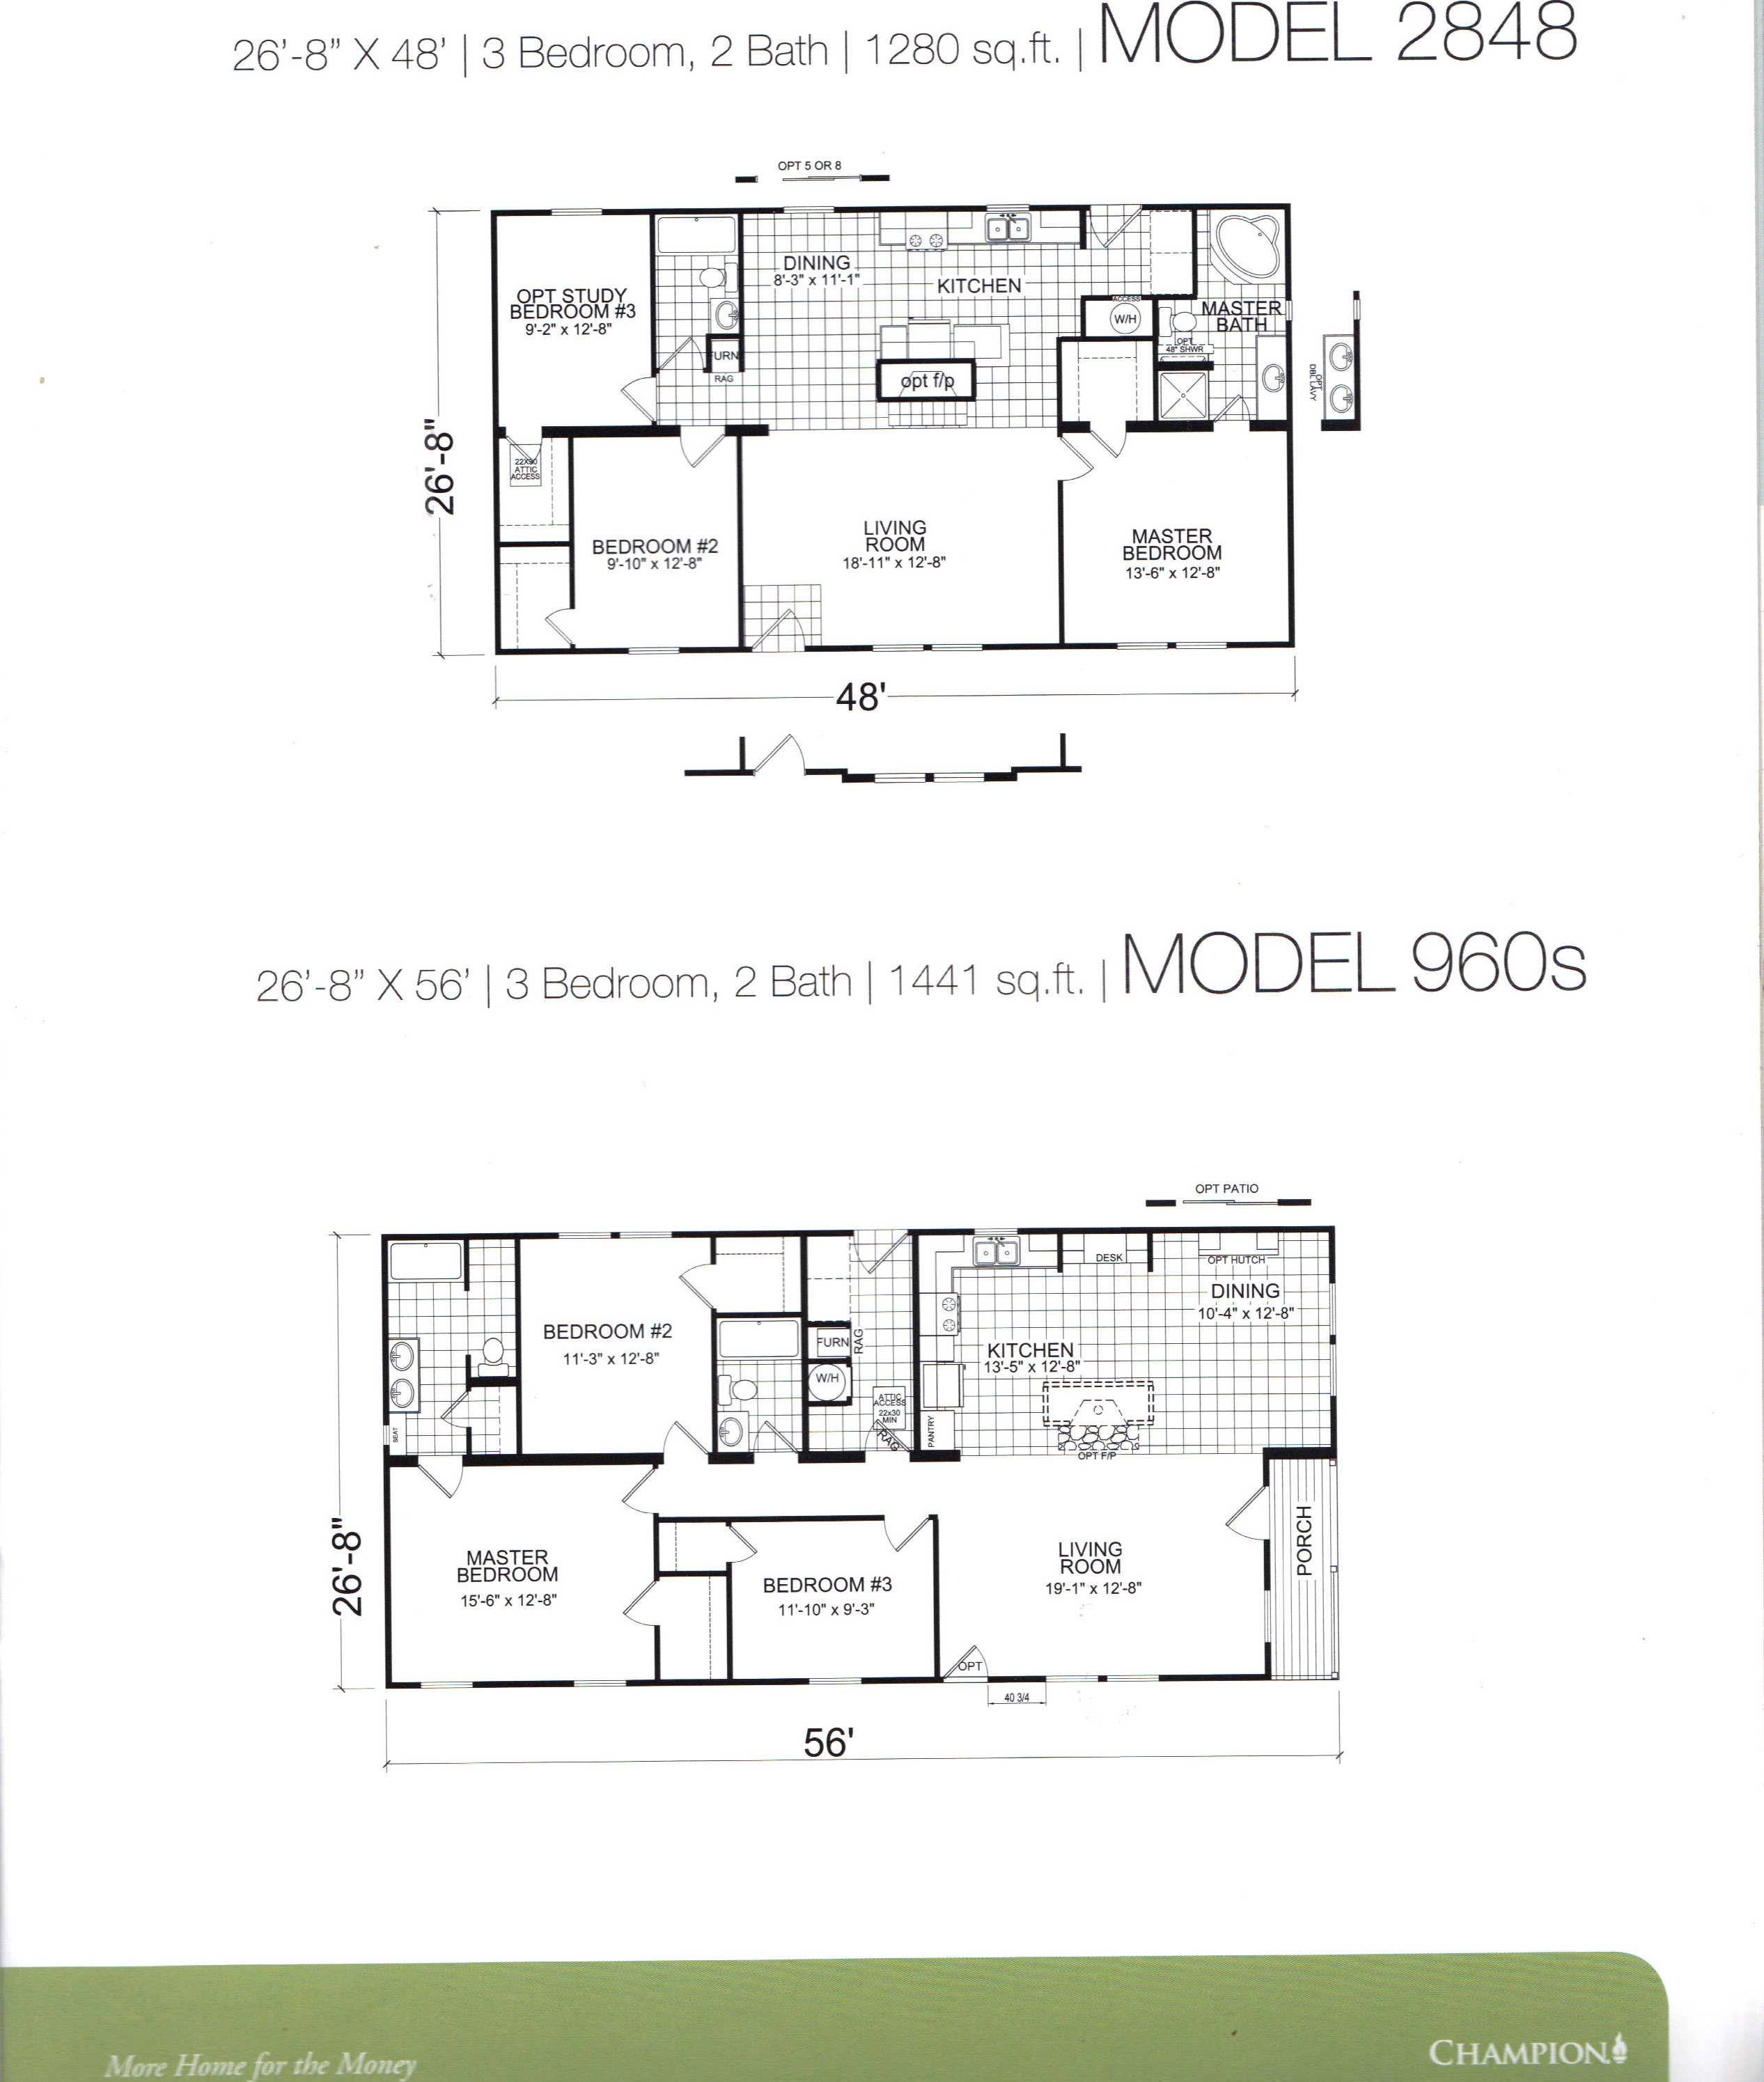 Haleys homes champion floor plans for 1994 fleetwood mobile home floor plans